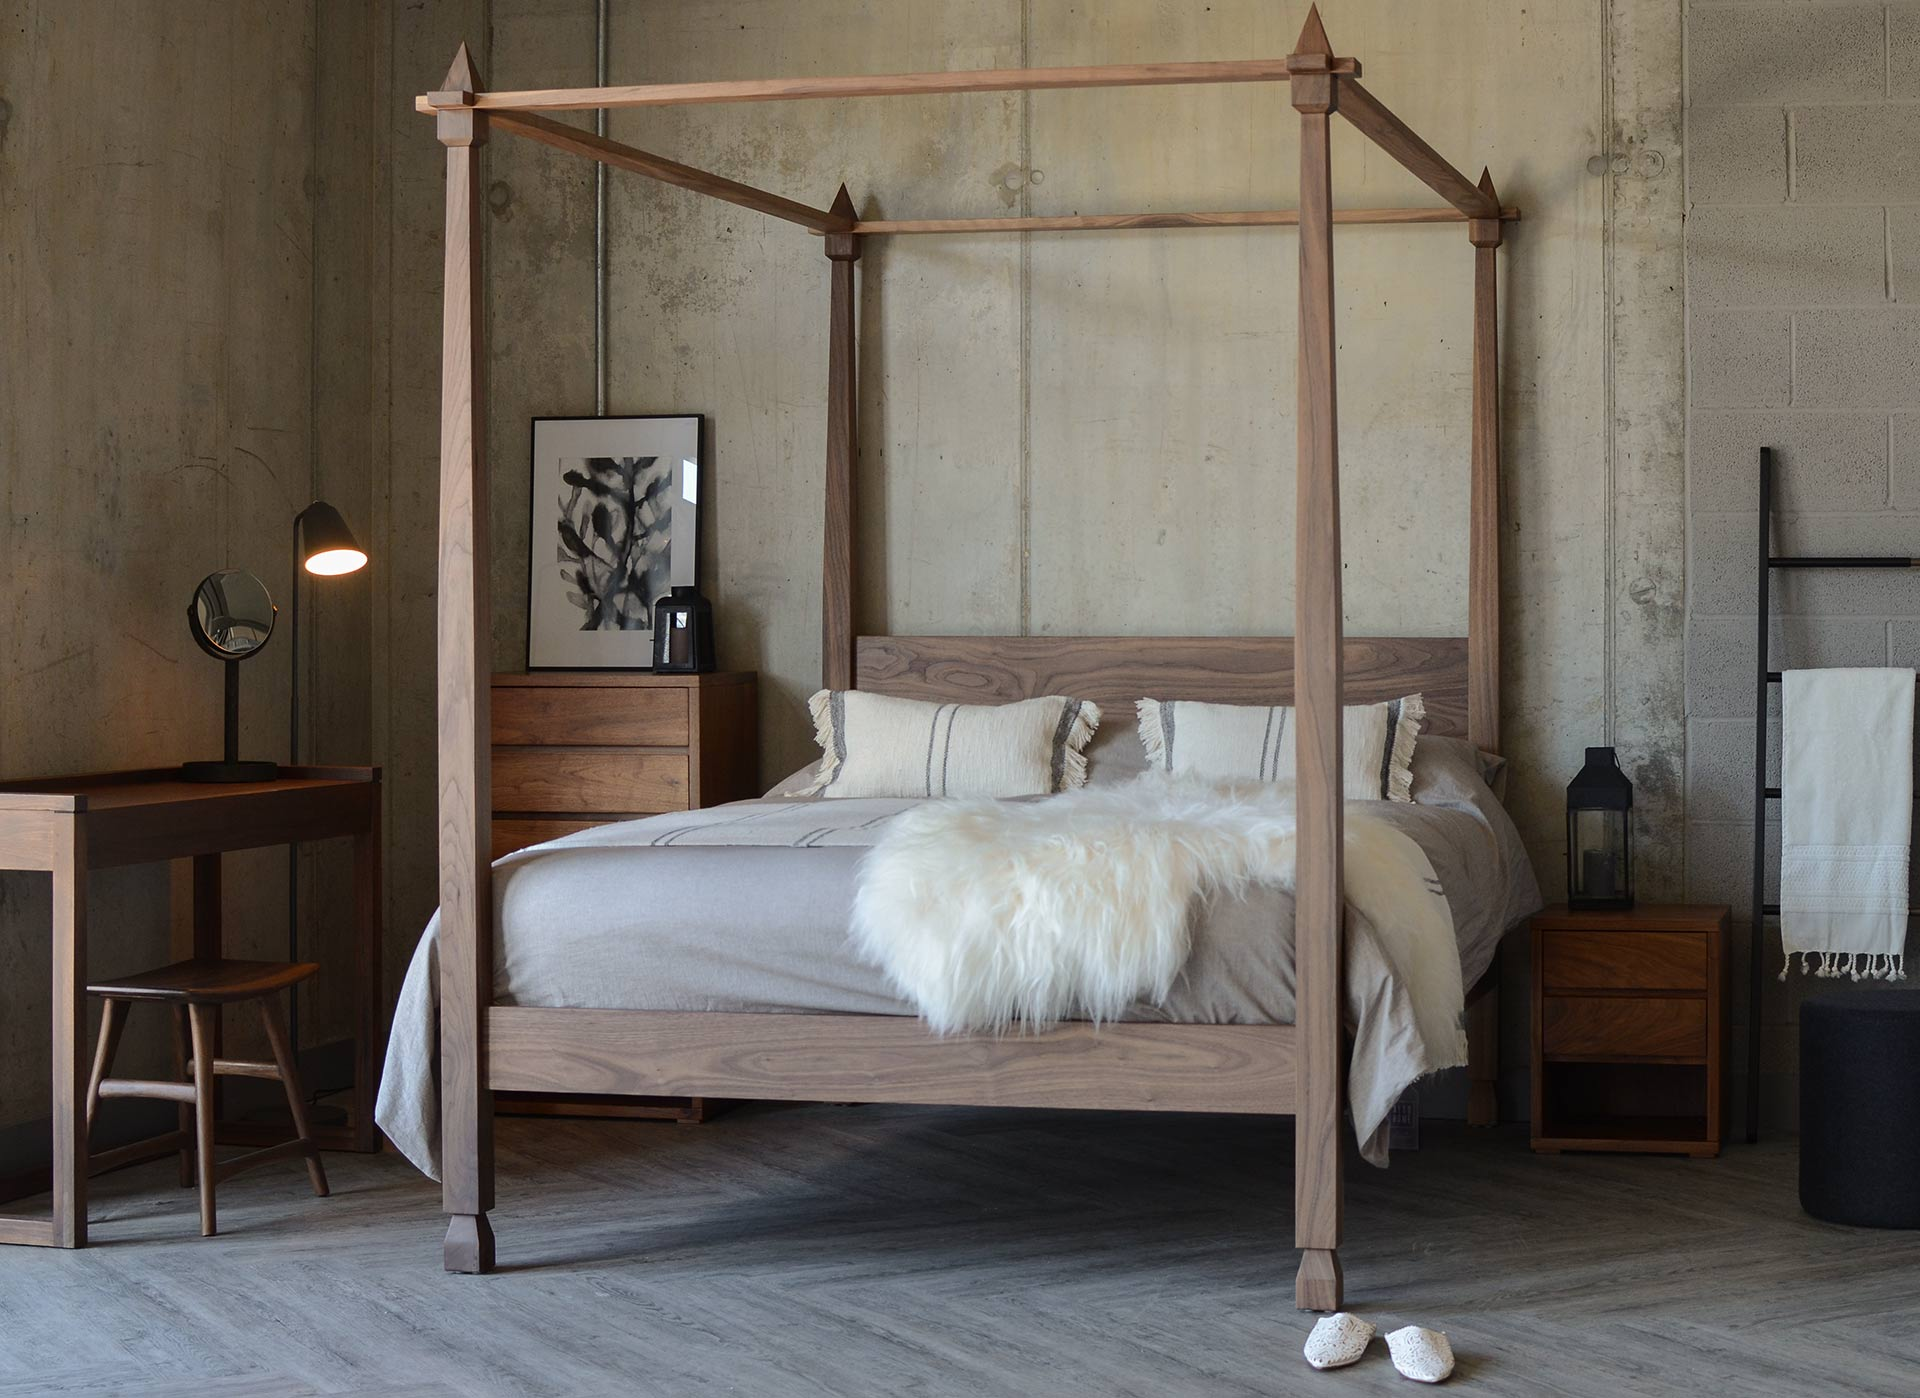 Walnut 4-Poster Indian inspired Raj bed with walnut bedroom furniture